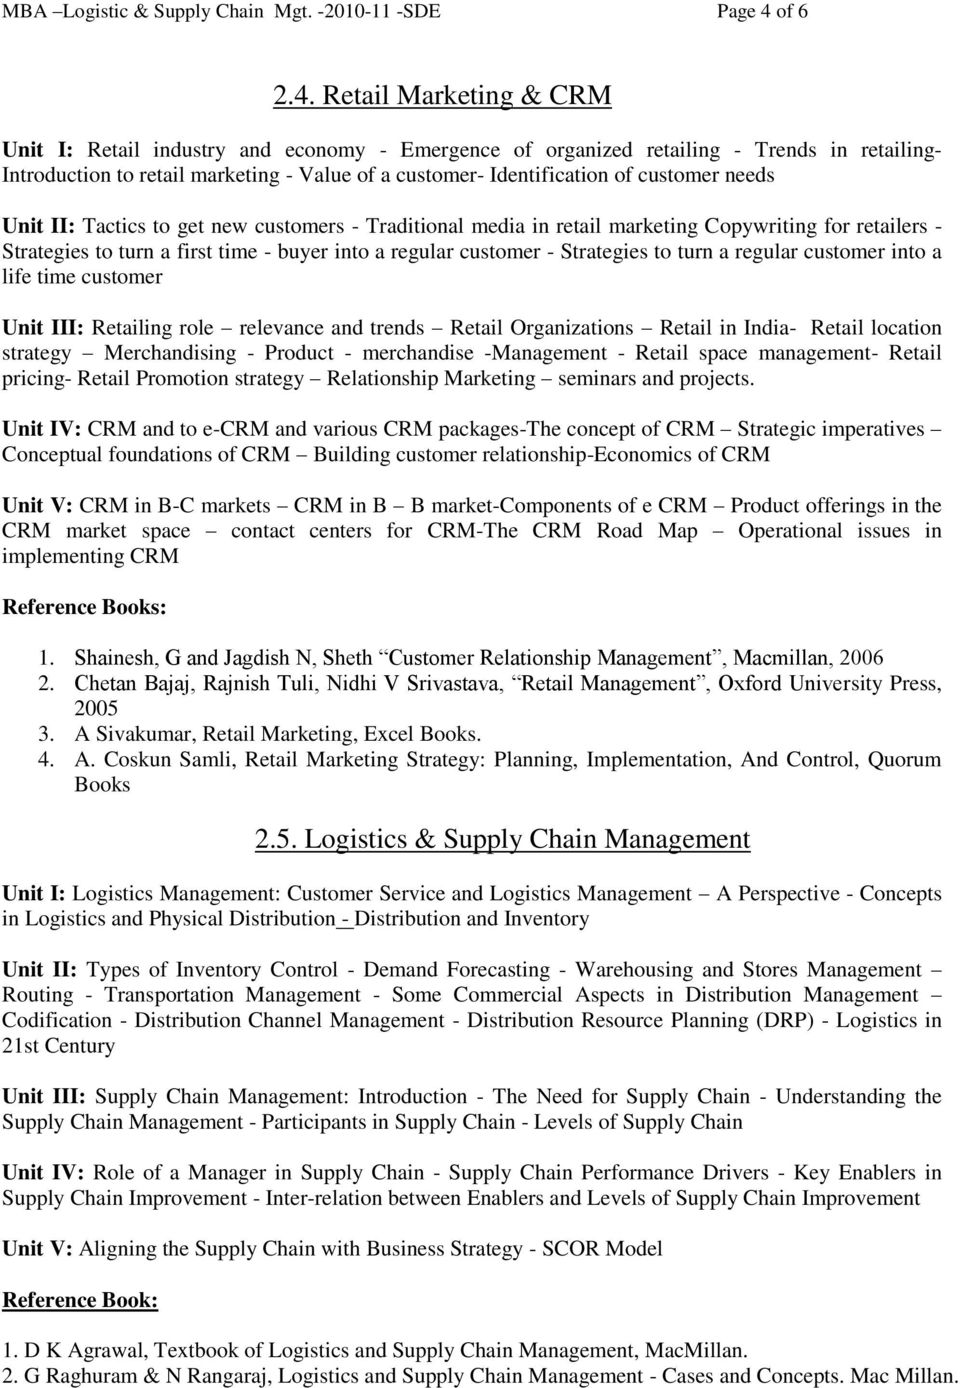 M B A Logistic and Supply Chain Management (Annaul Pattern) - PDF